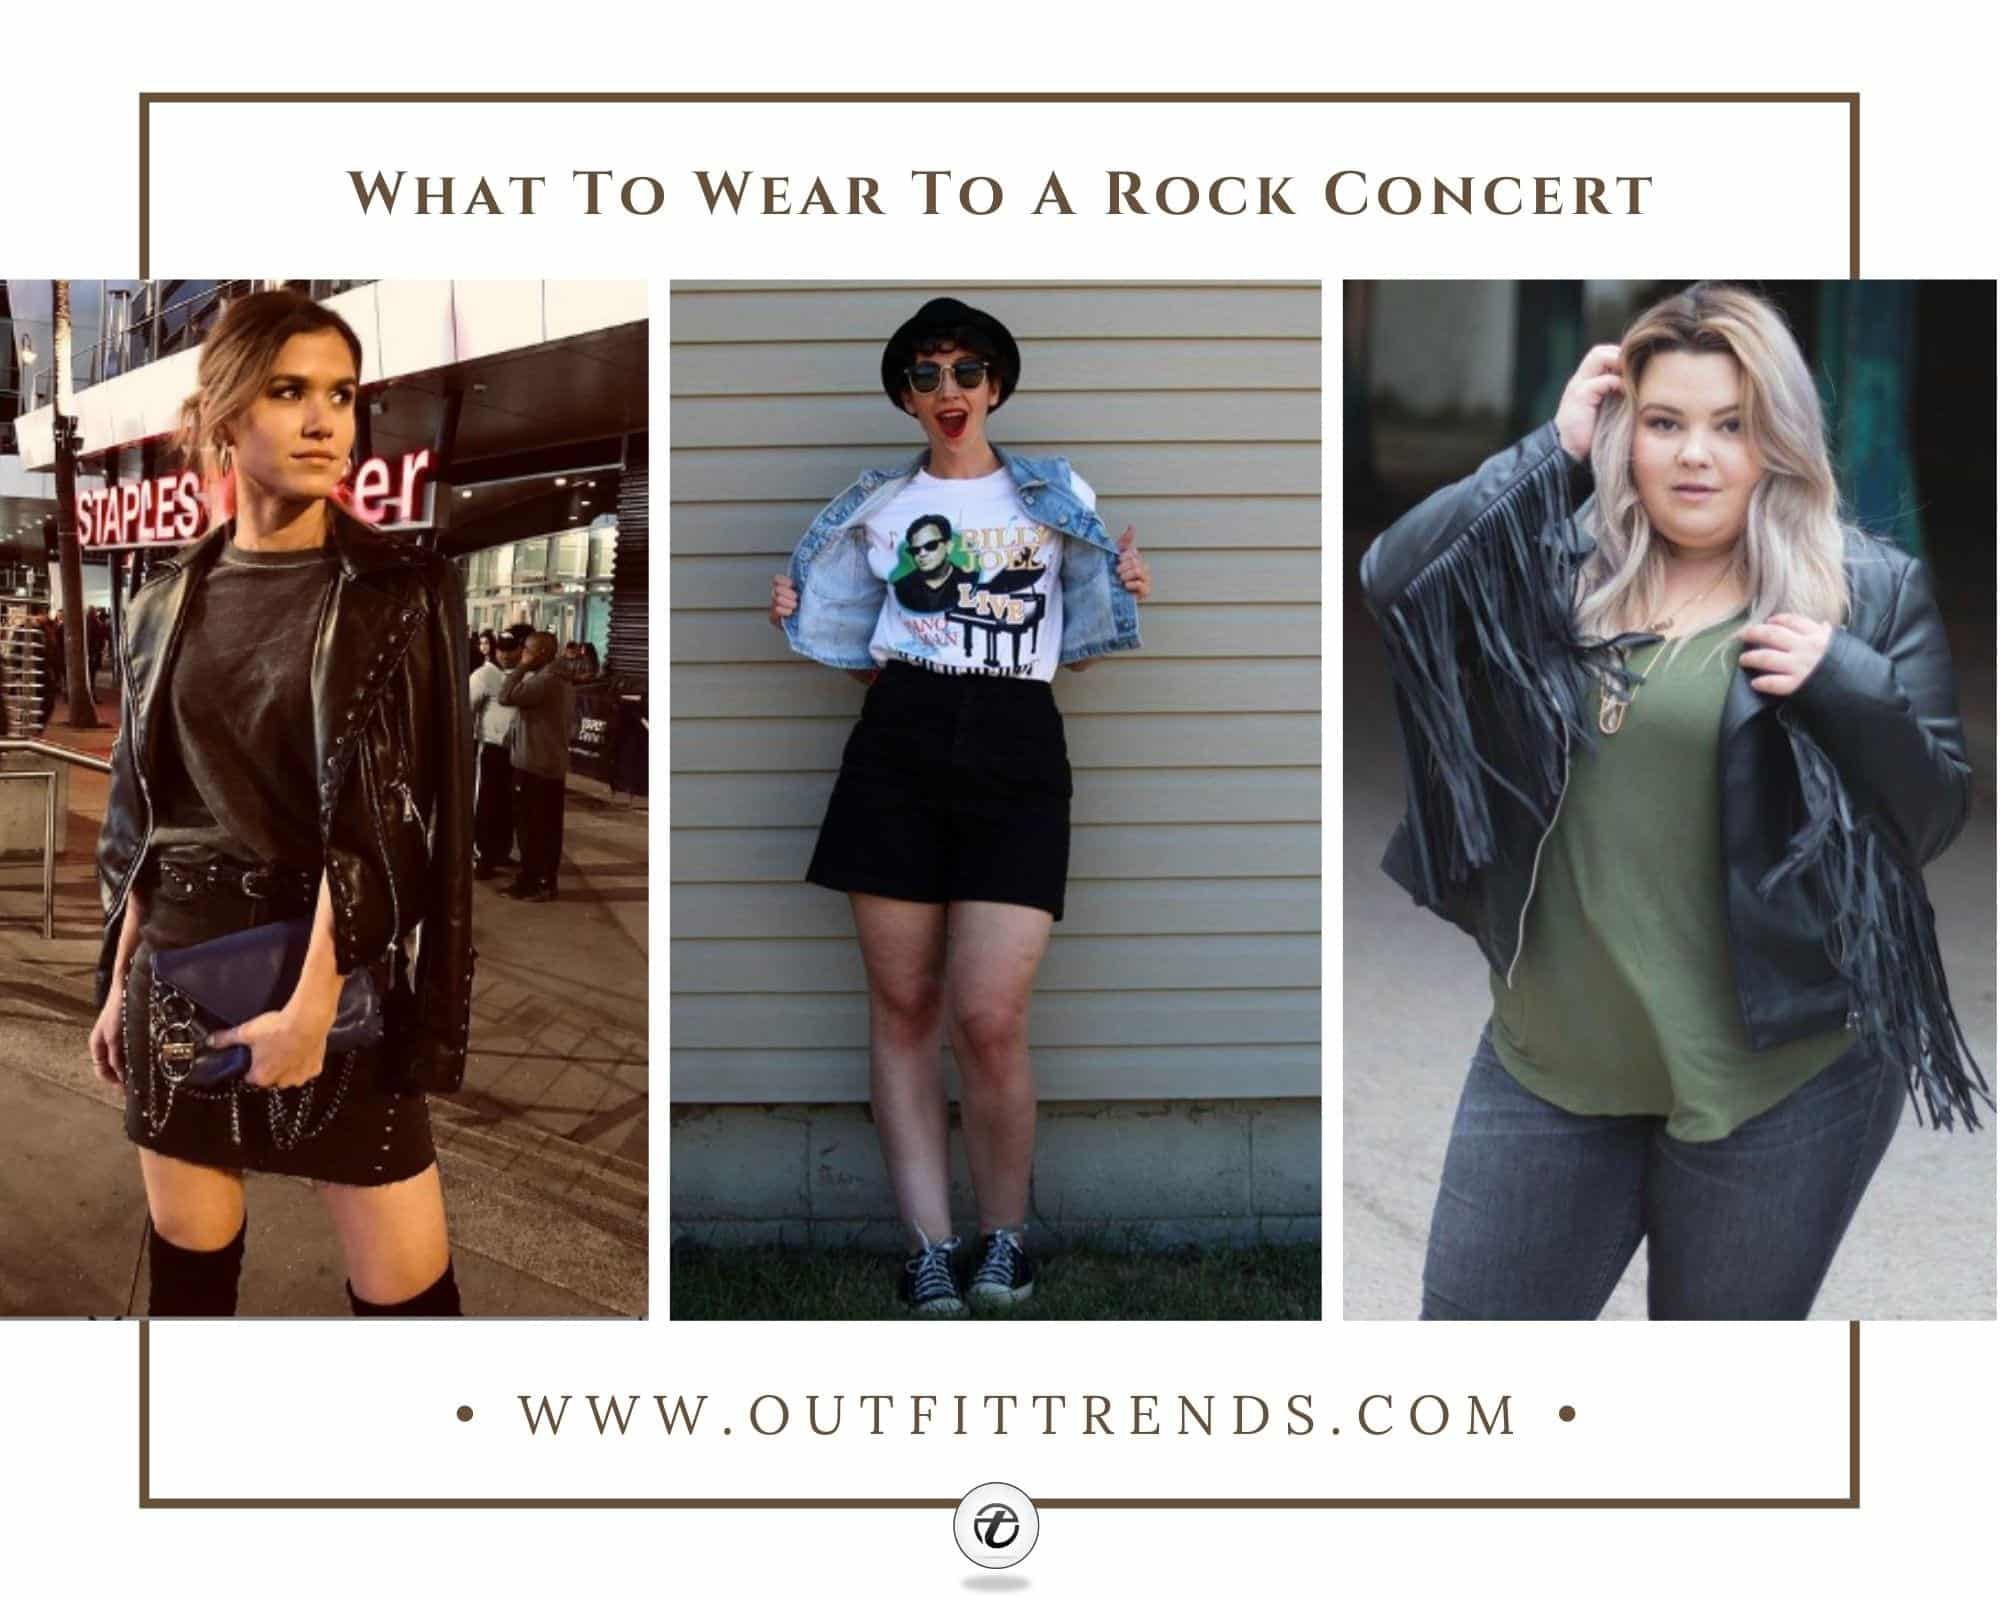 28 Rock Concert Outfit Ideas For Women To Try This Year